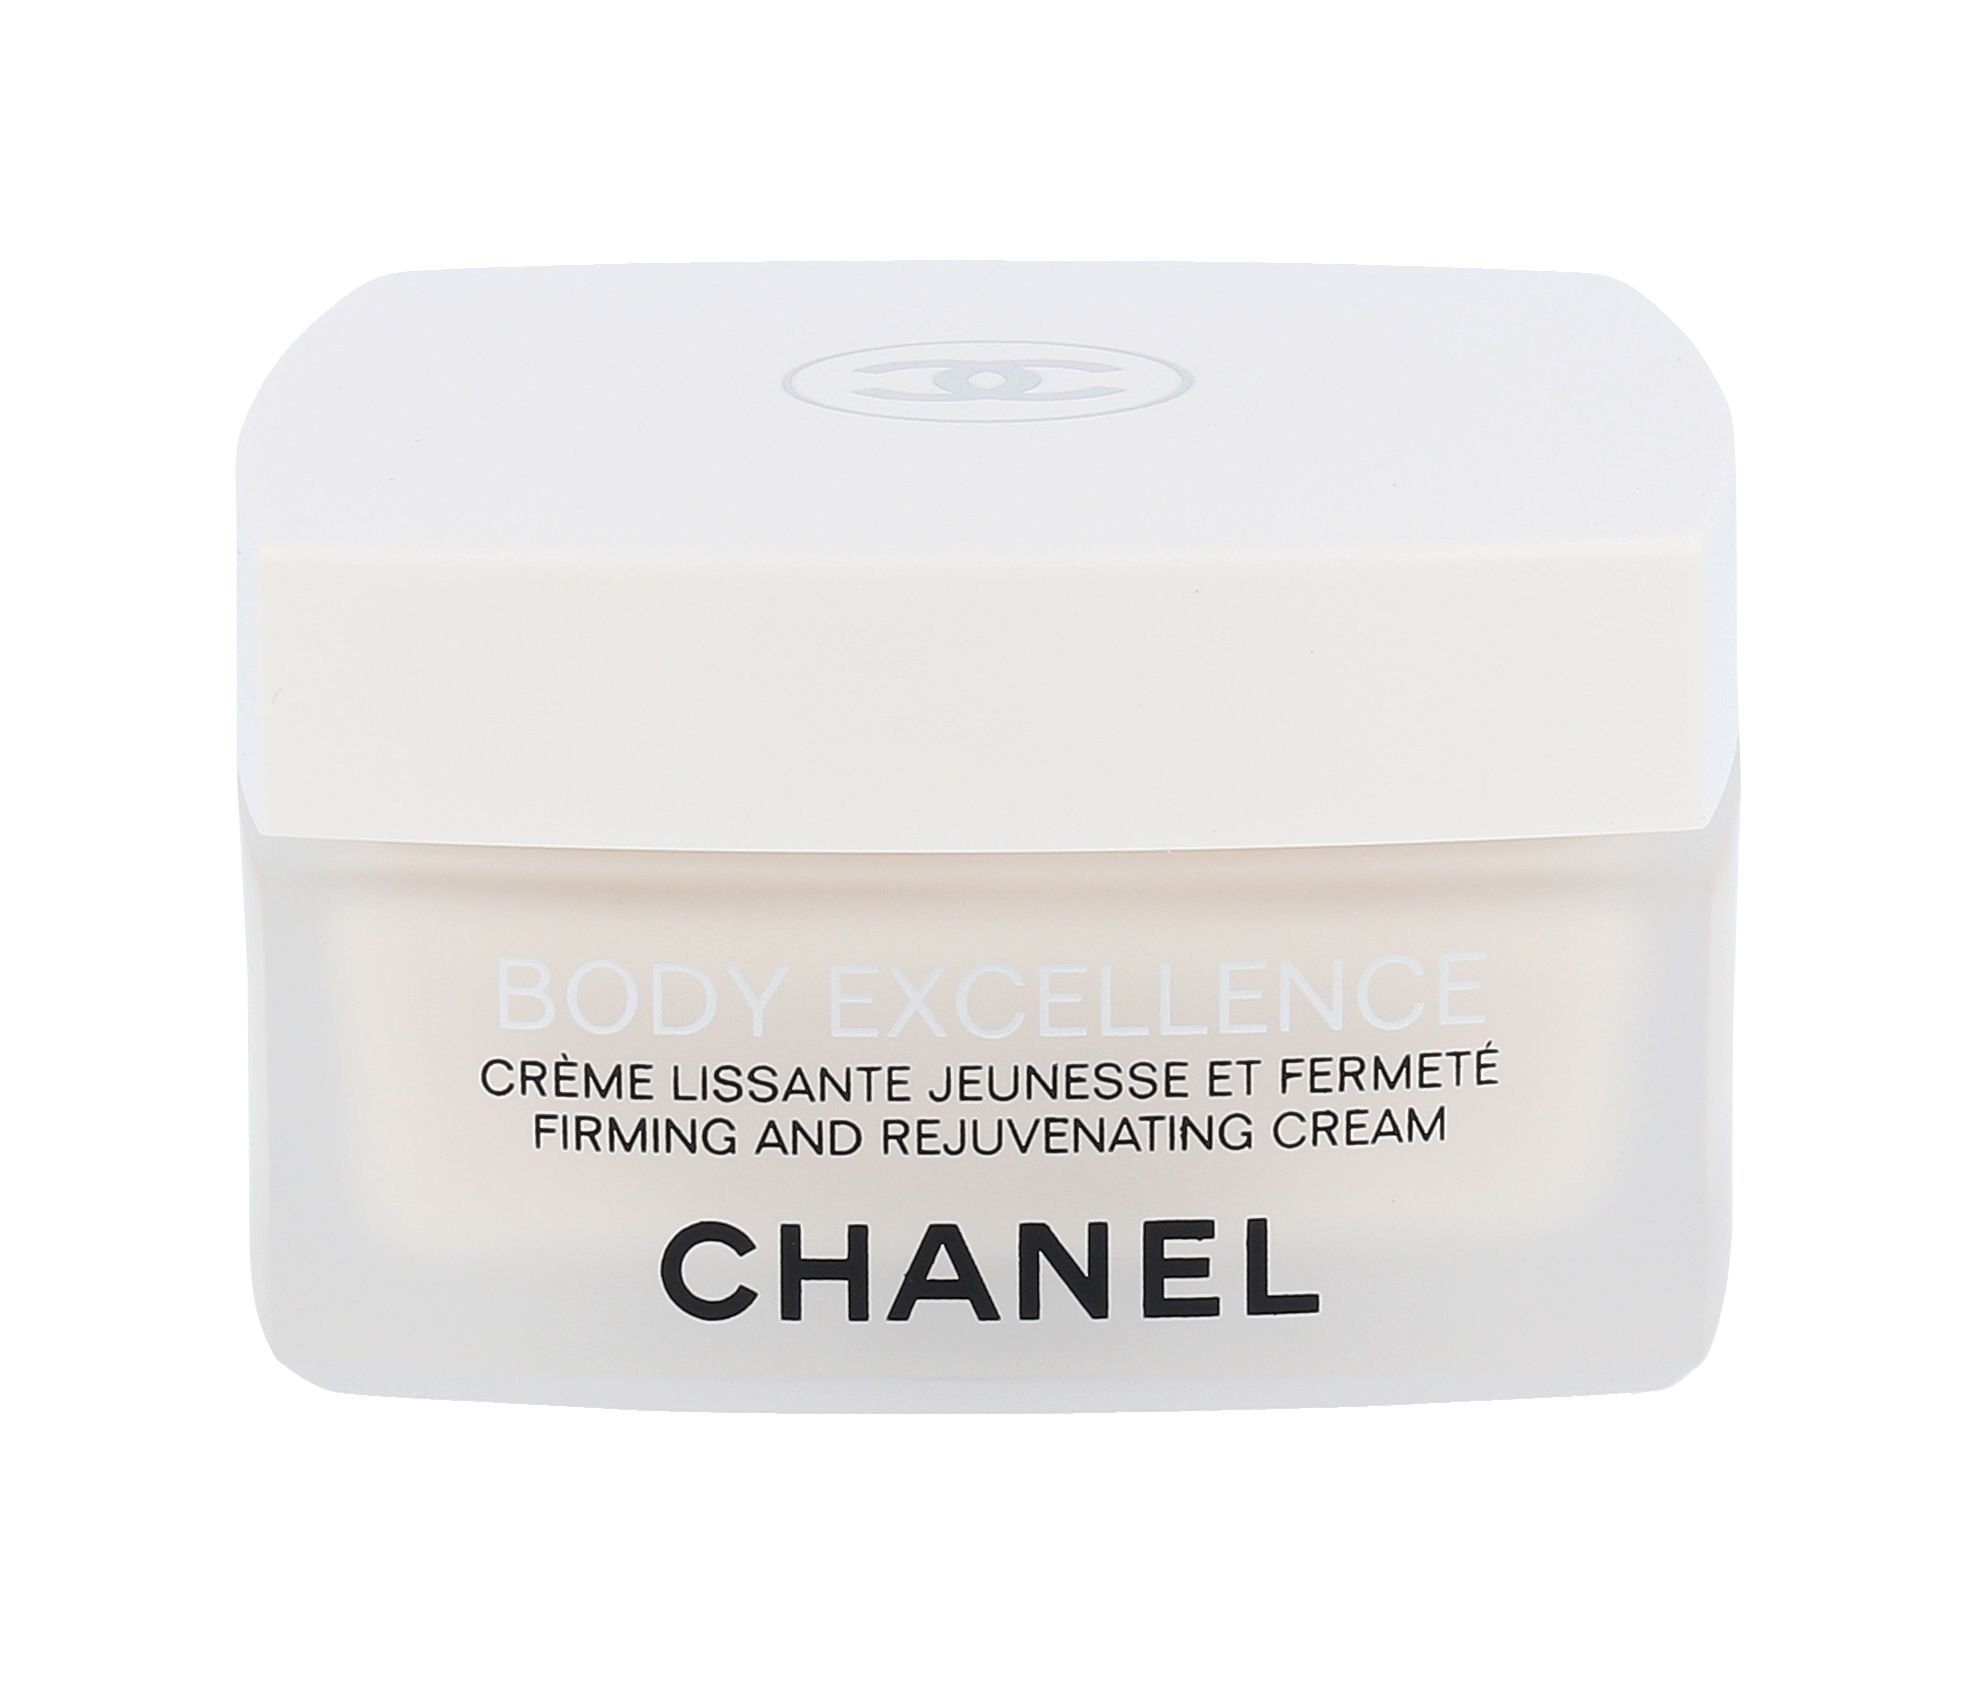 Chanel Body Excellence Firming And Rejuvenating Cream Cosmetic 150g